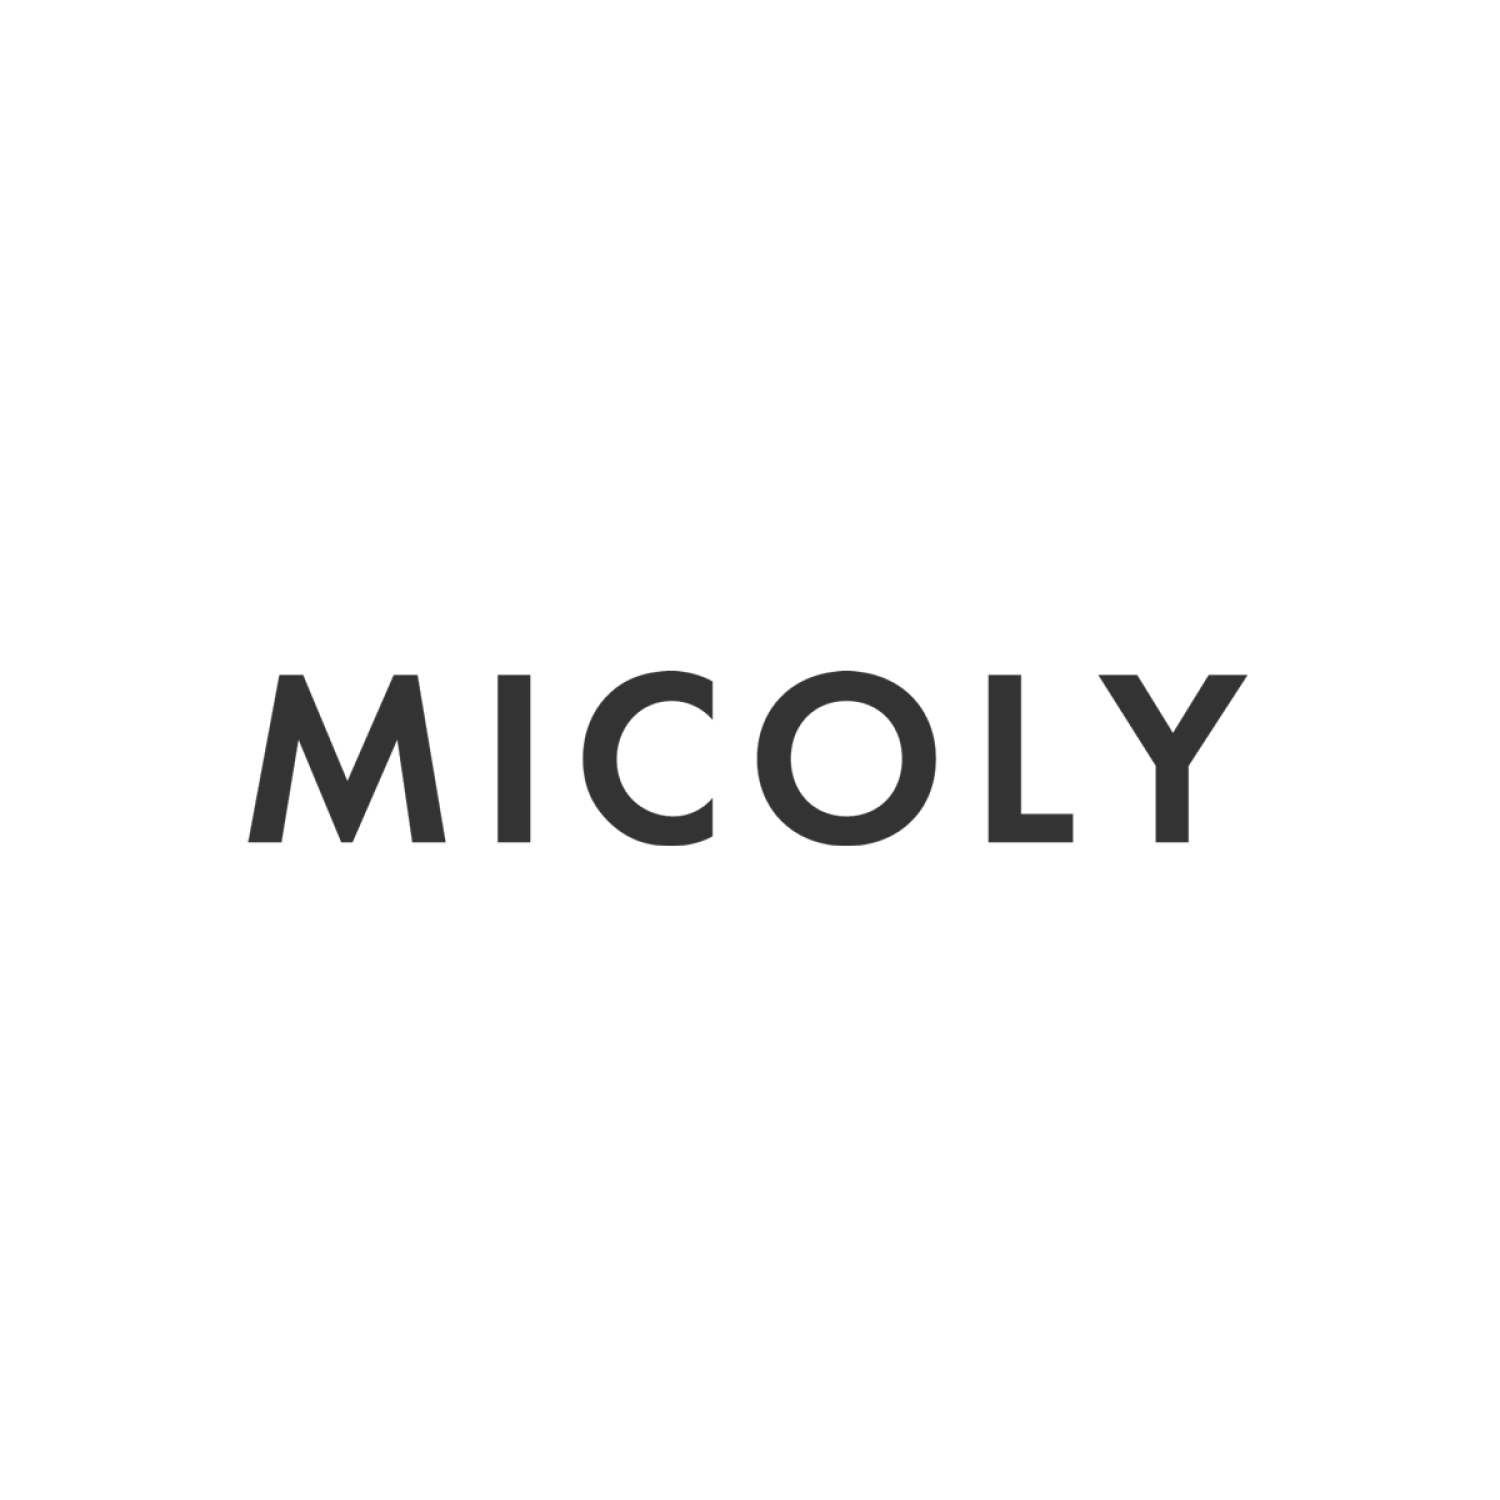 MICOLY